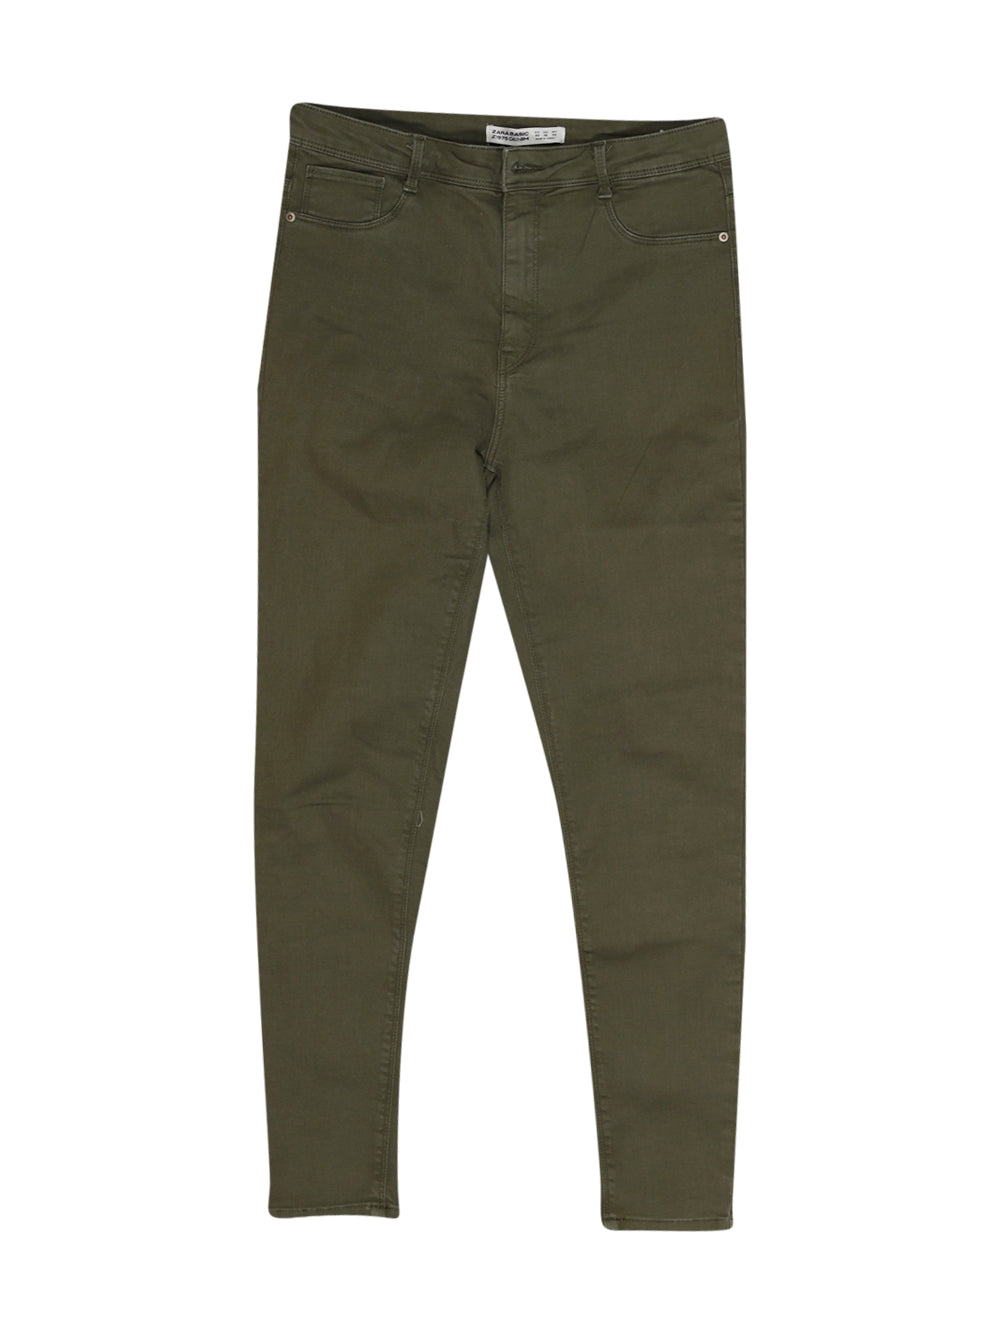 Front photo of Preloved Zara Green Woman's trousers - size 14/XL